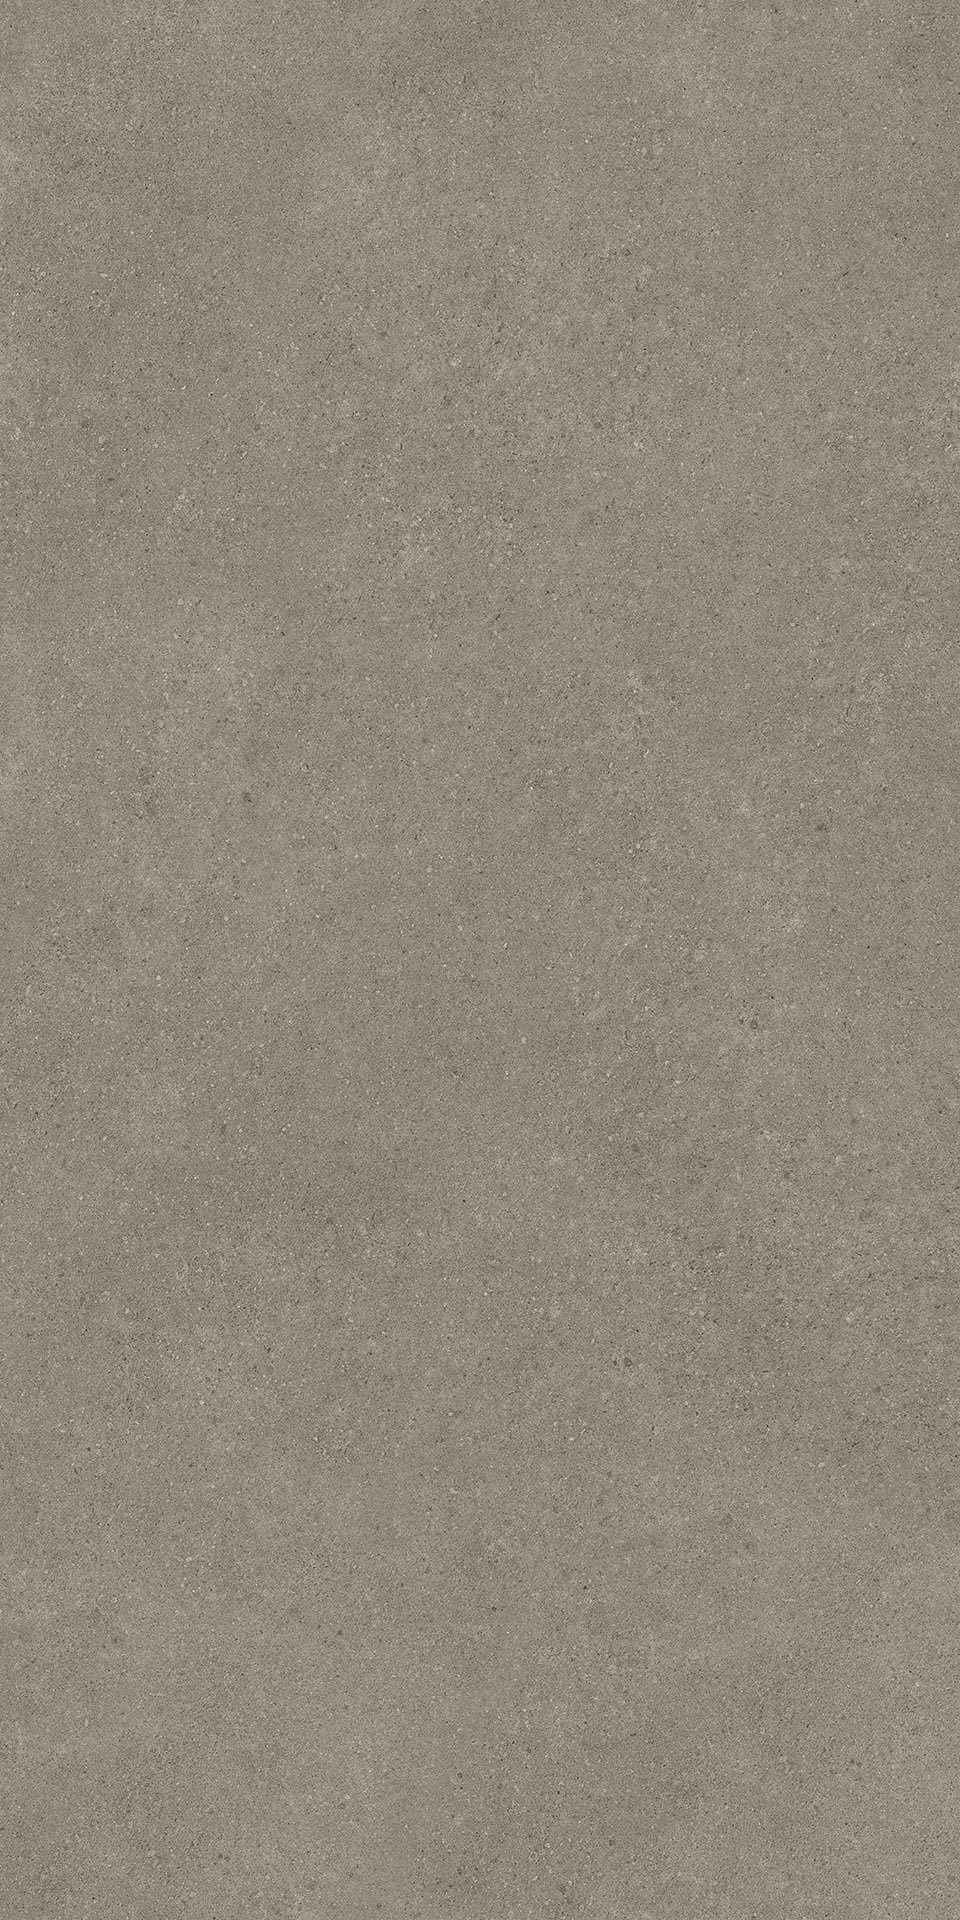 162x324-kone-grey-stone-look-tile-atlas-plan